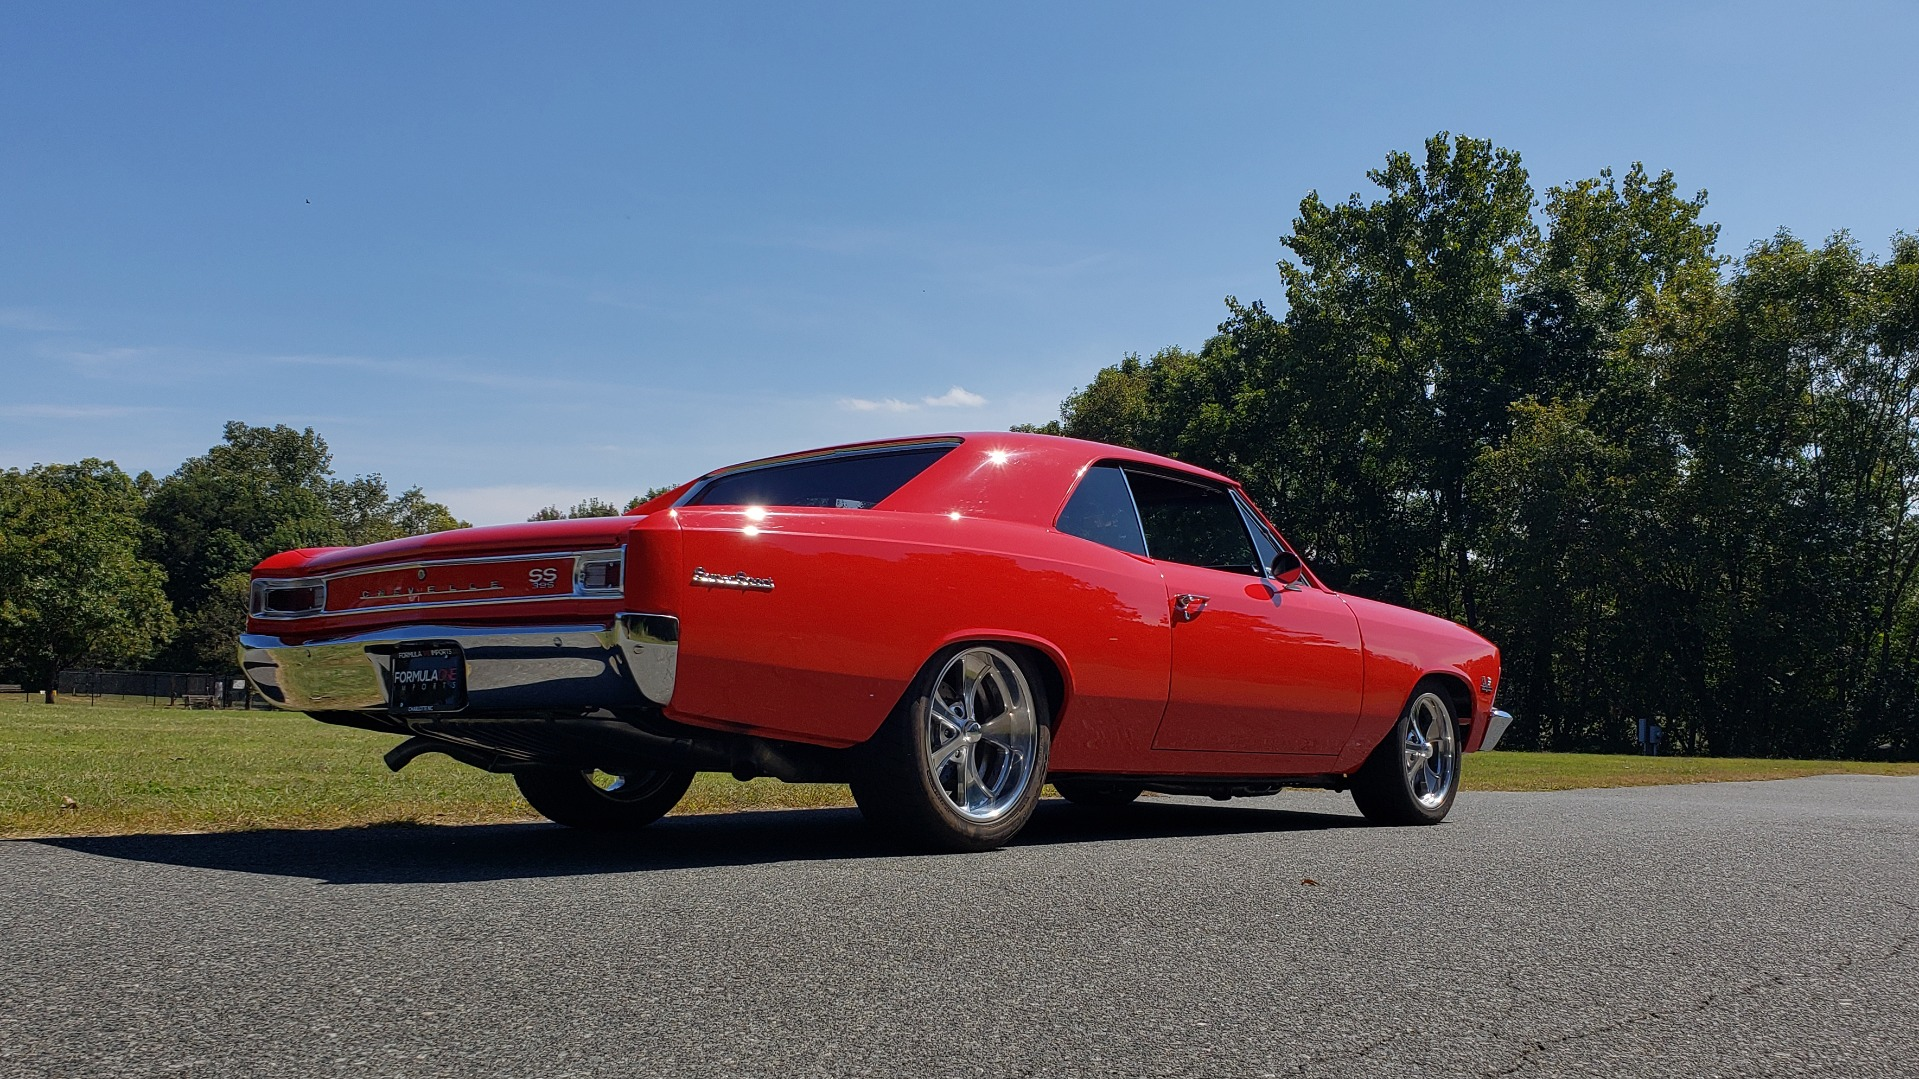 Used 1966 Chevrolet CHEVELLE SS 396 CUSTOM RESTO-MOD / 4-SPEED MANUAL / 12-BOLT REAR for sale $74,999 at Formula Imports in Charlotte NC 28227 11